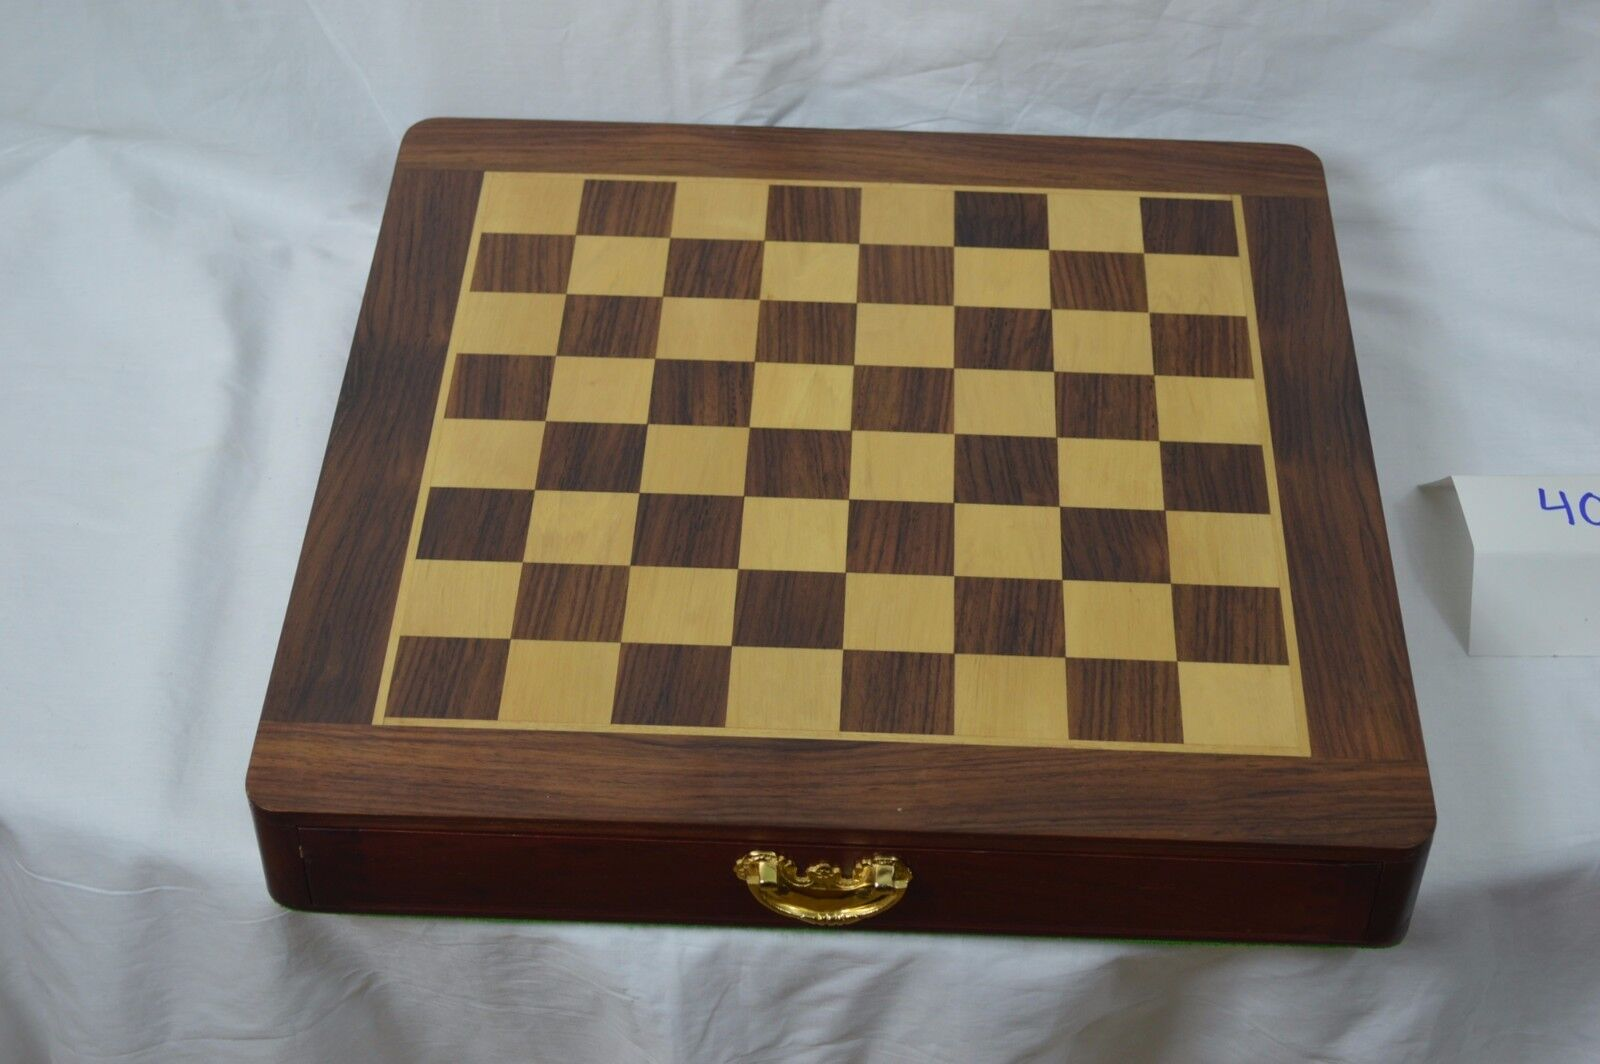 Bellissimo Hand Crafted Wooden Chess Set Box with Felt bottom